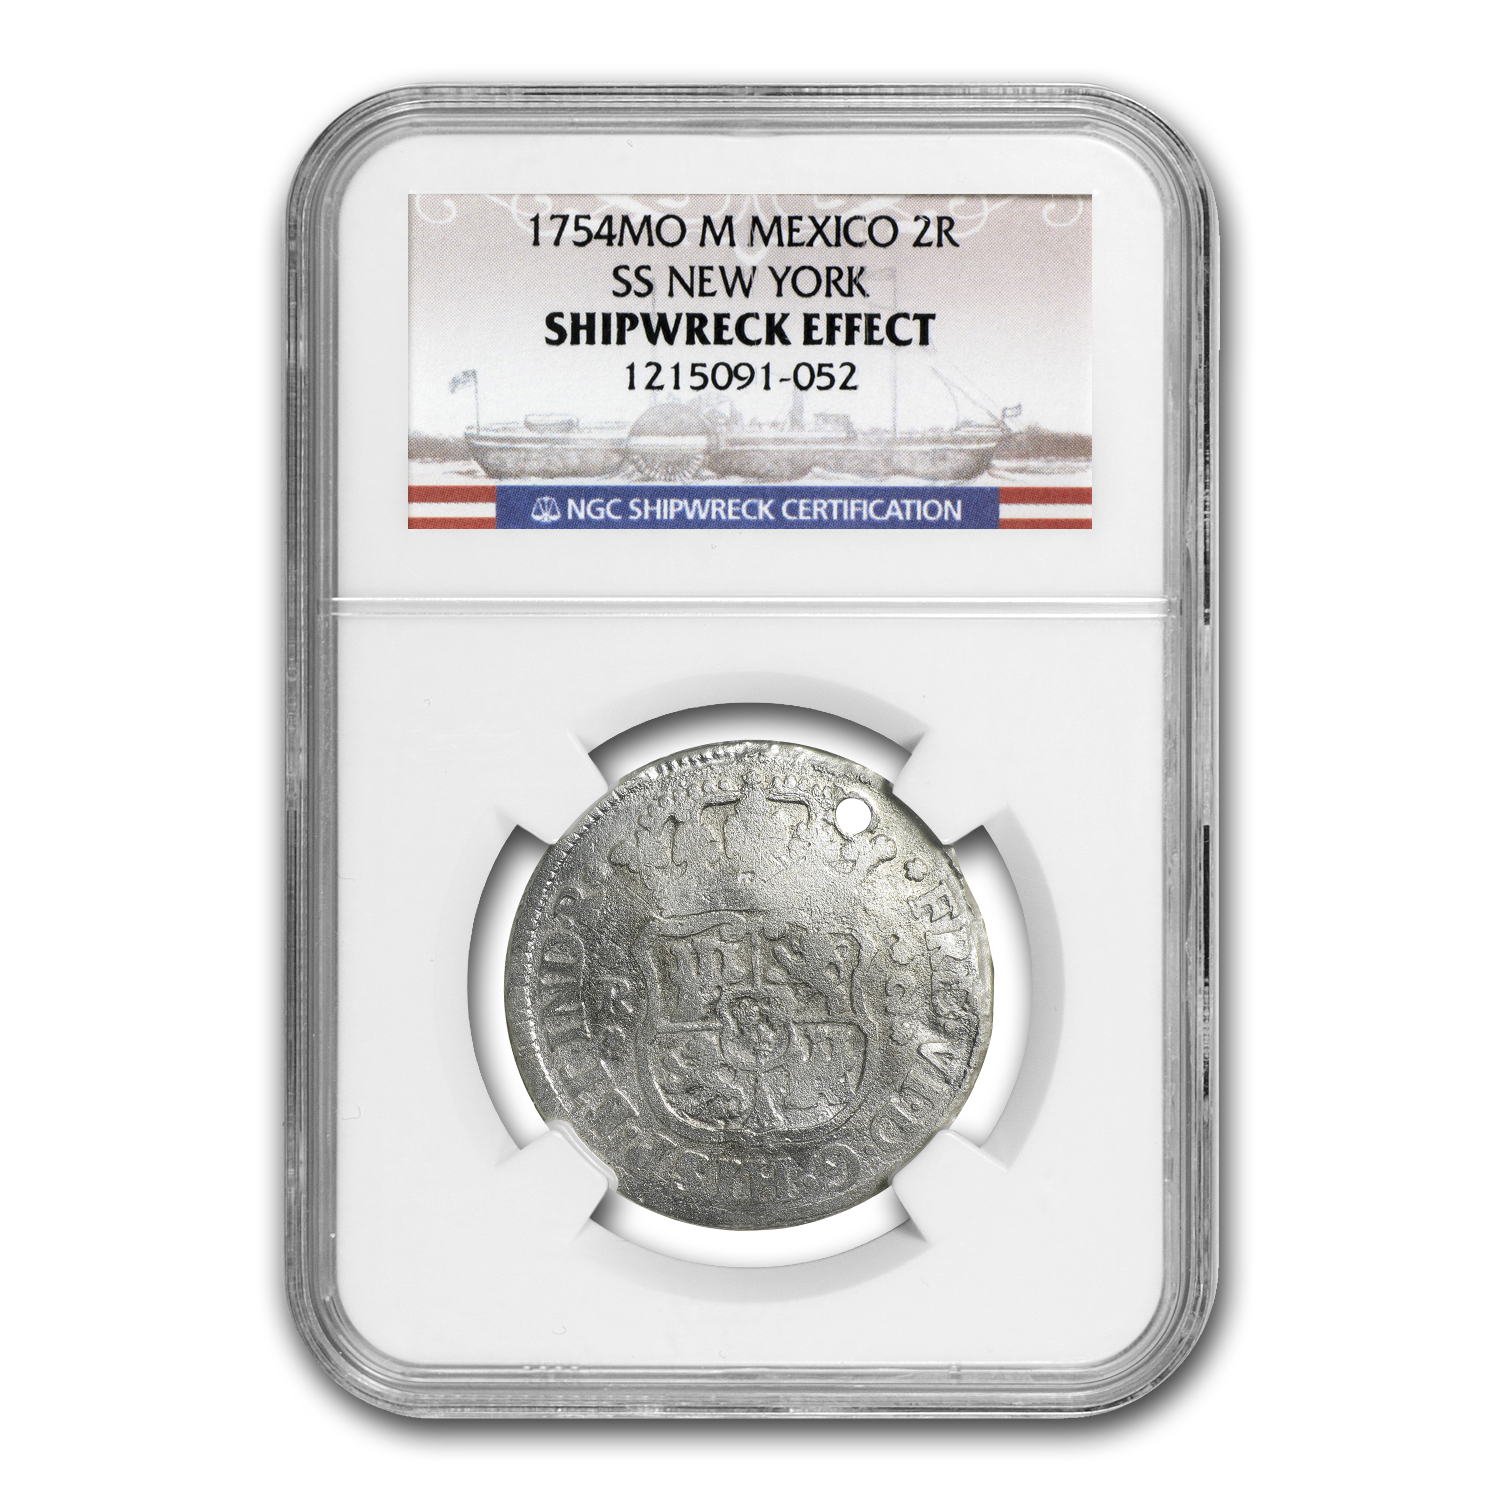 1754 MO M Mexico 2R SS New York SHIPWRECK EFFECT Coin - NGC